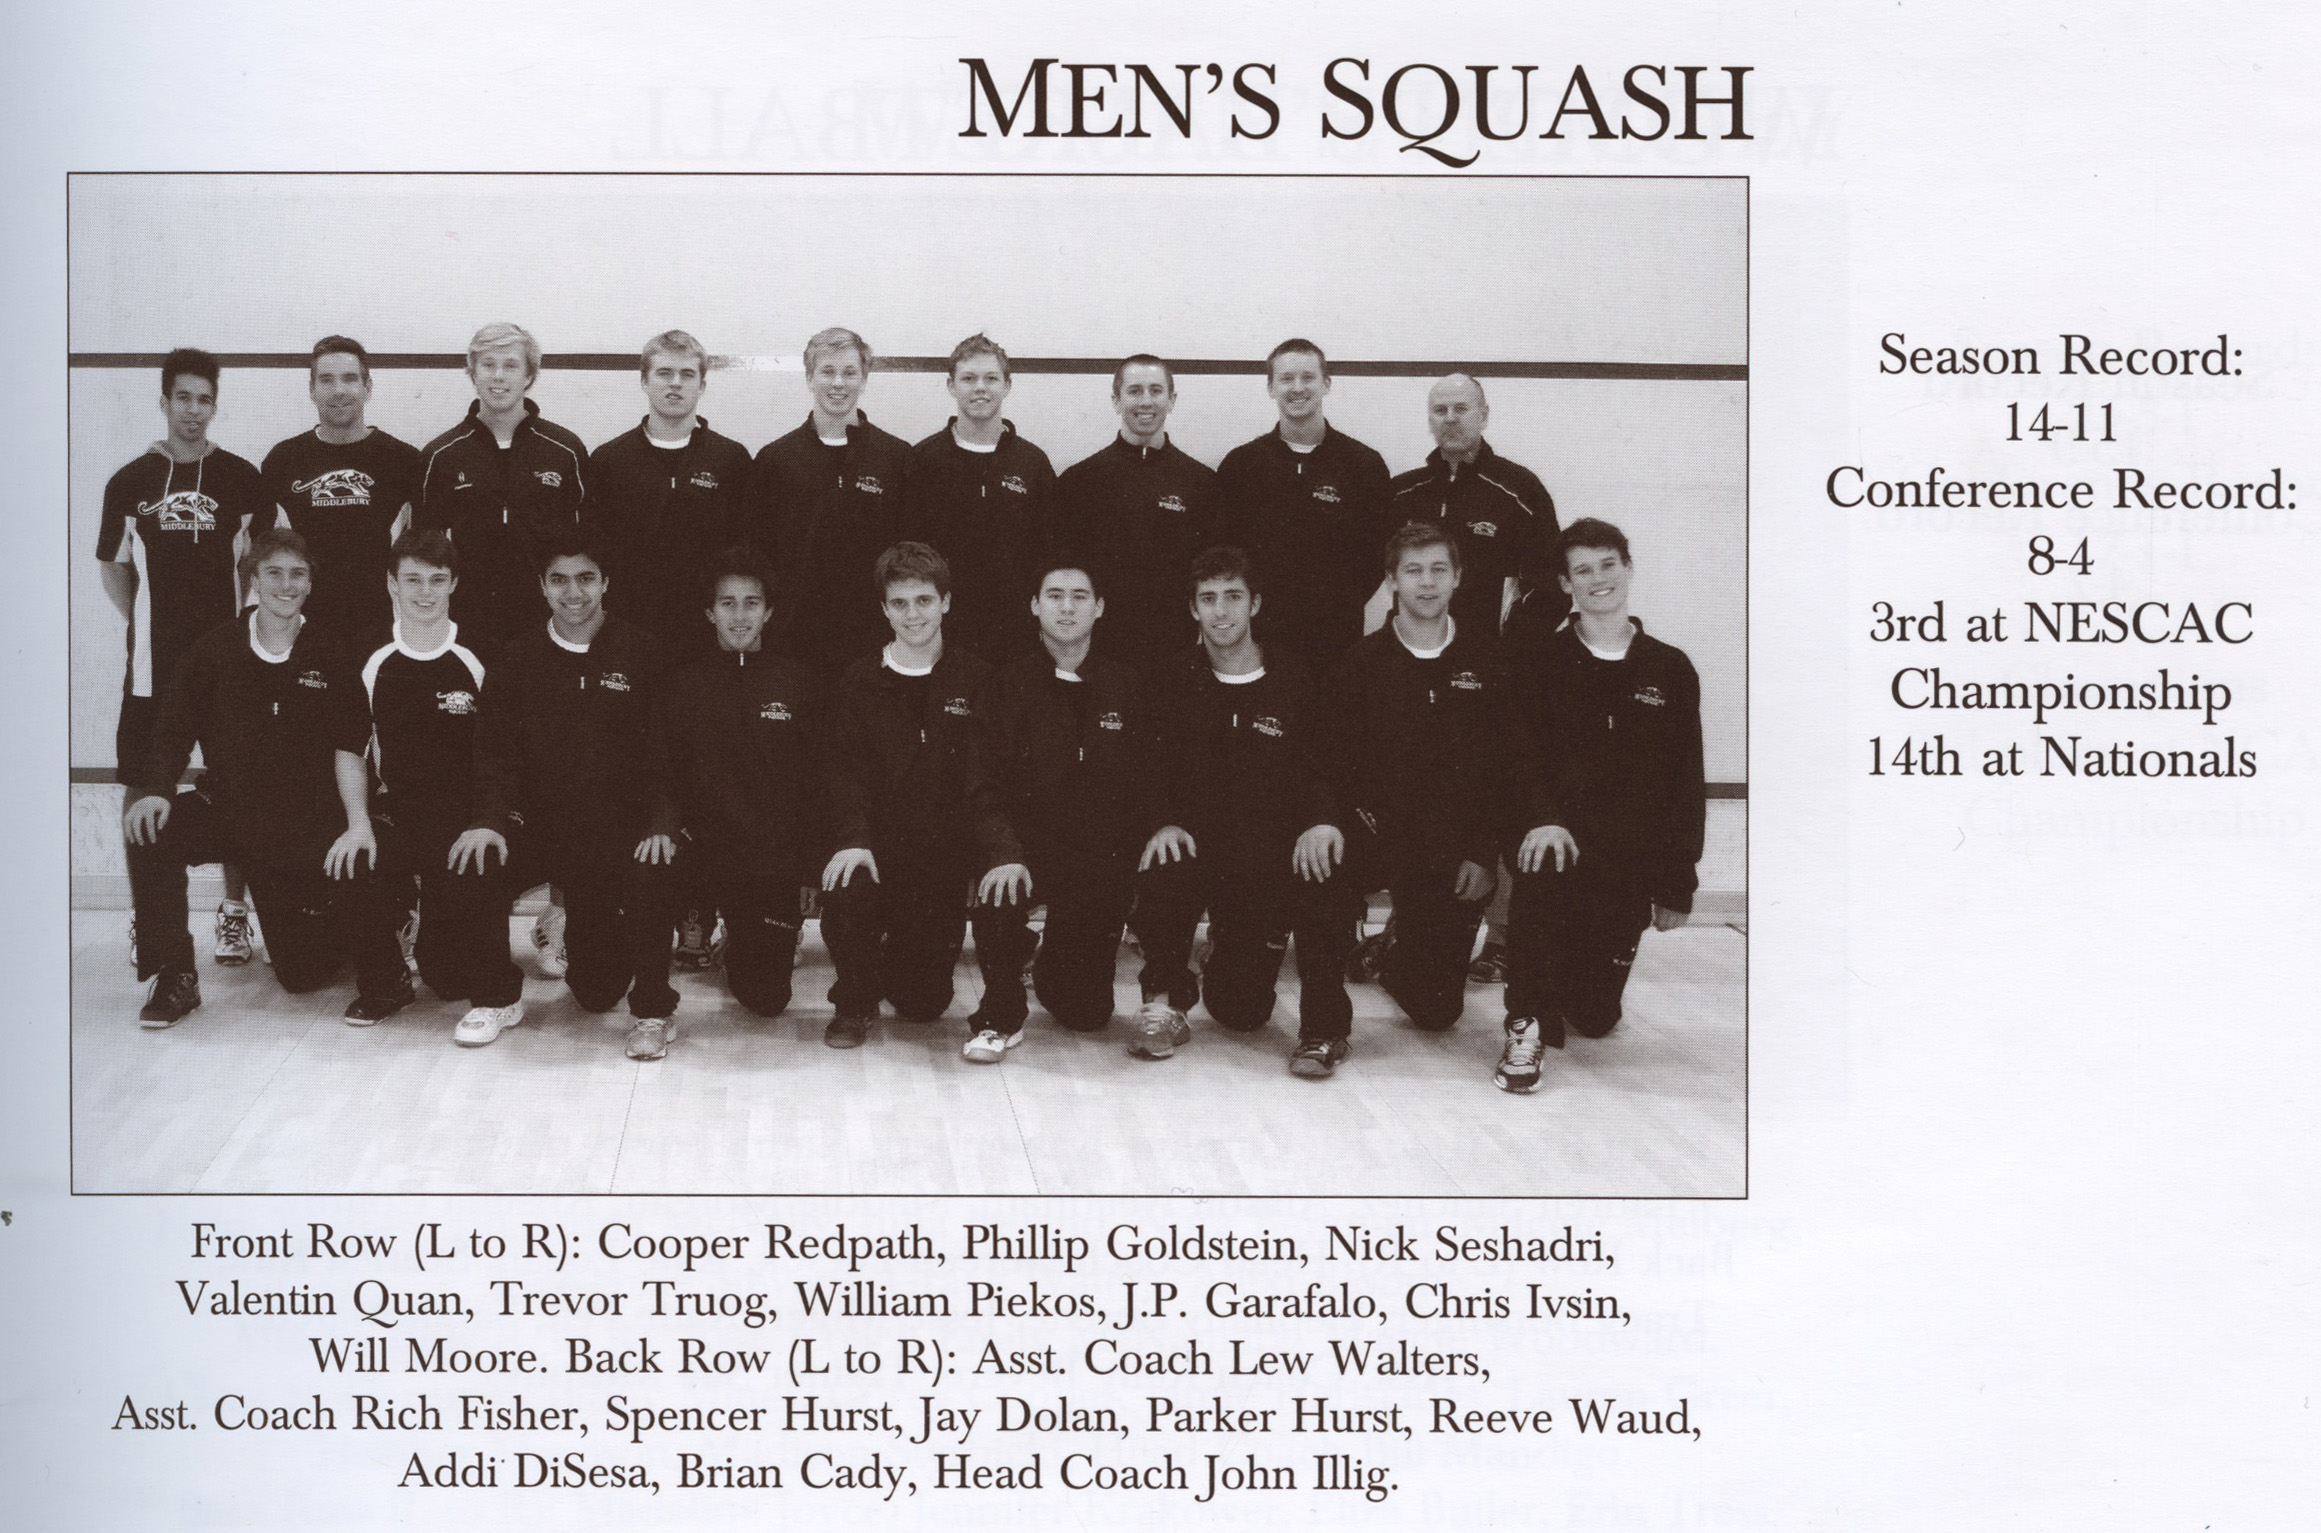 2011 Men's Squash Team, photograph from the Kaleidoscope